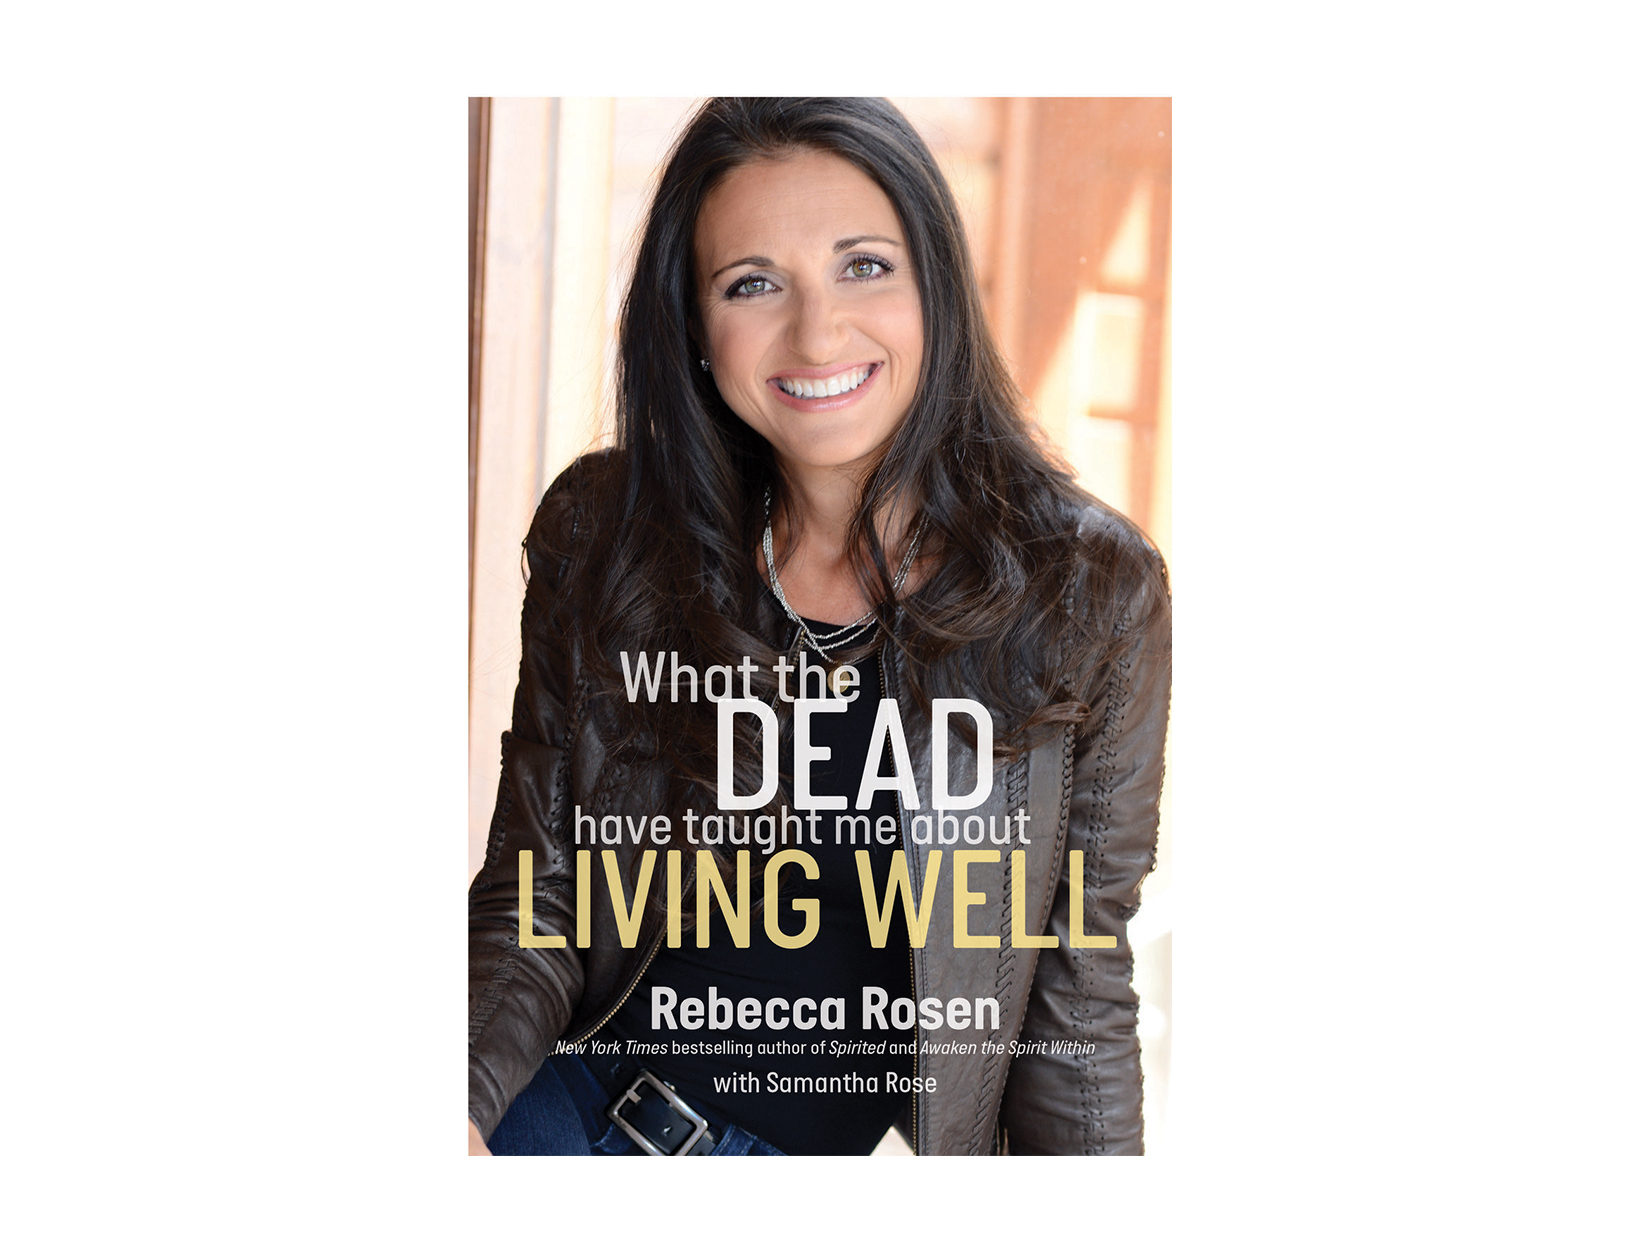 What the Dead Have Taught Me About Living Well by Rebecca Rosen with Samantha Rose